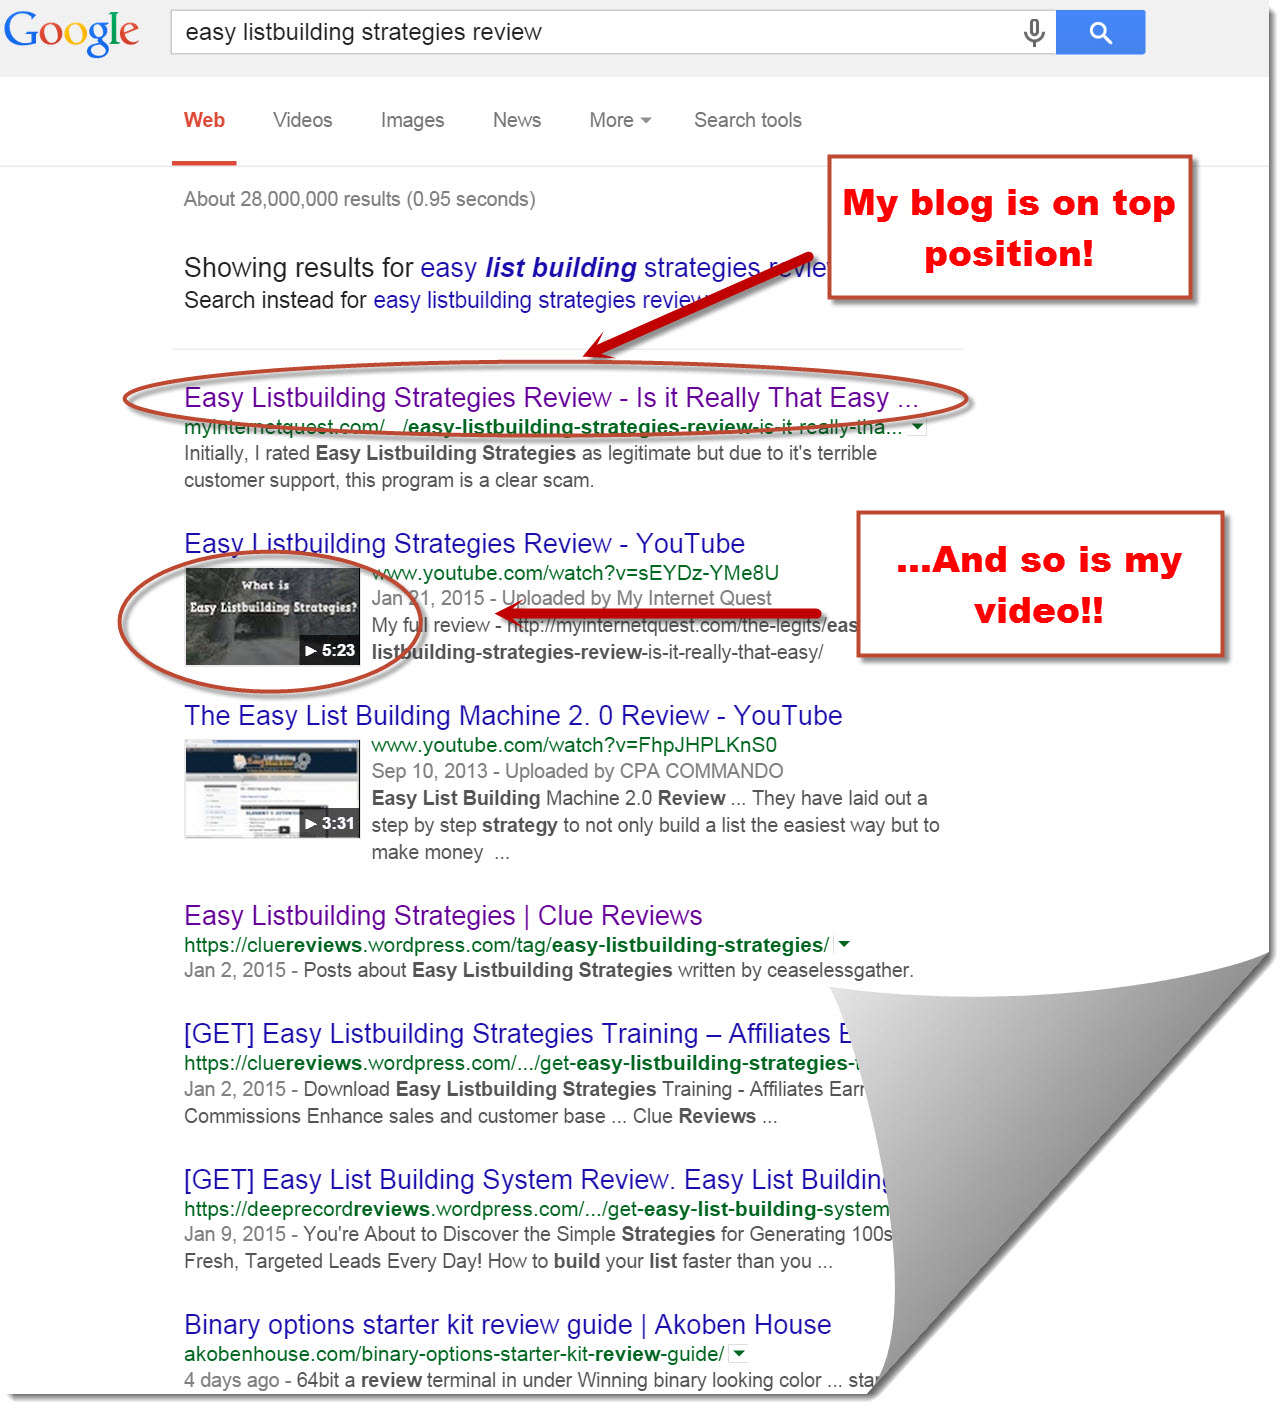 Google search results for easy listbuilding strategies